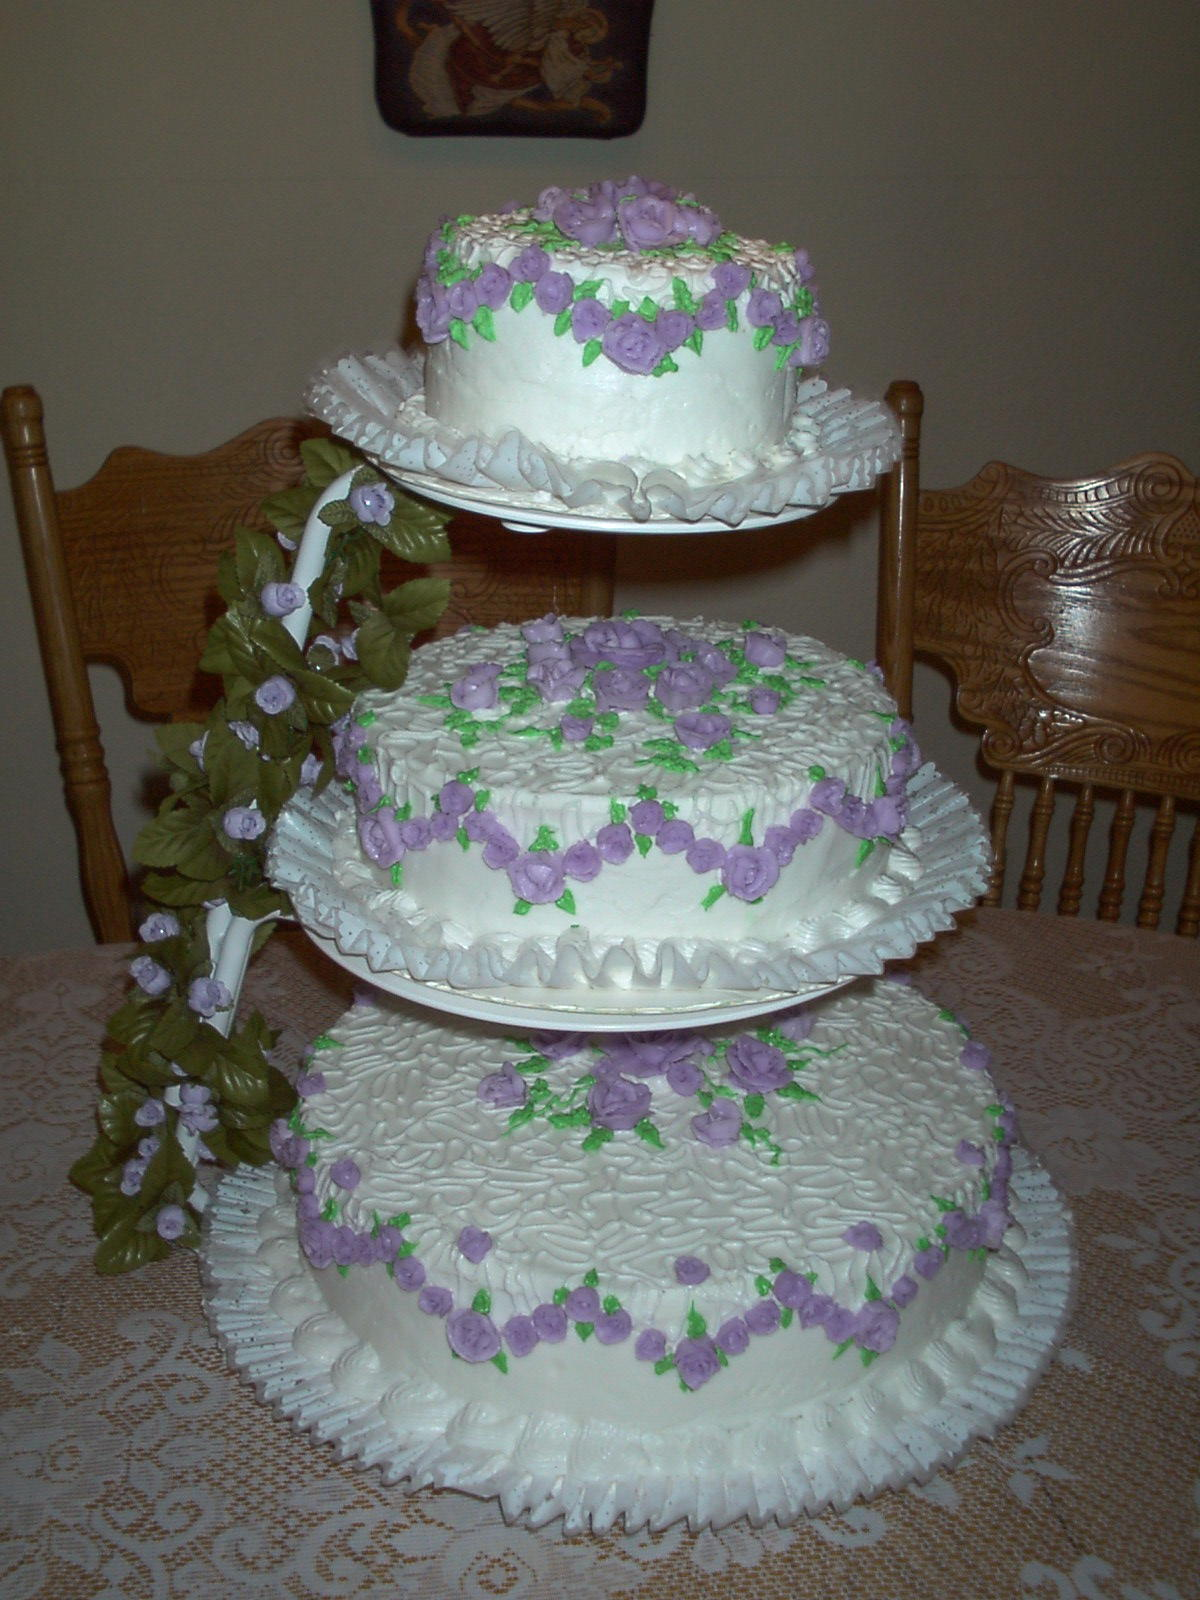 Here are some photos and descriptions of cakes made with love by the ...